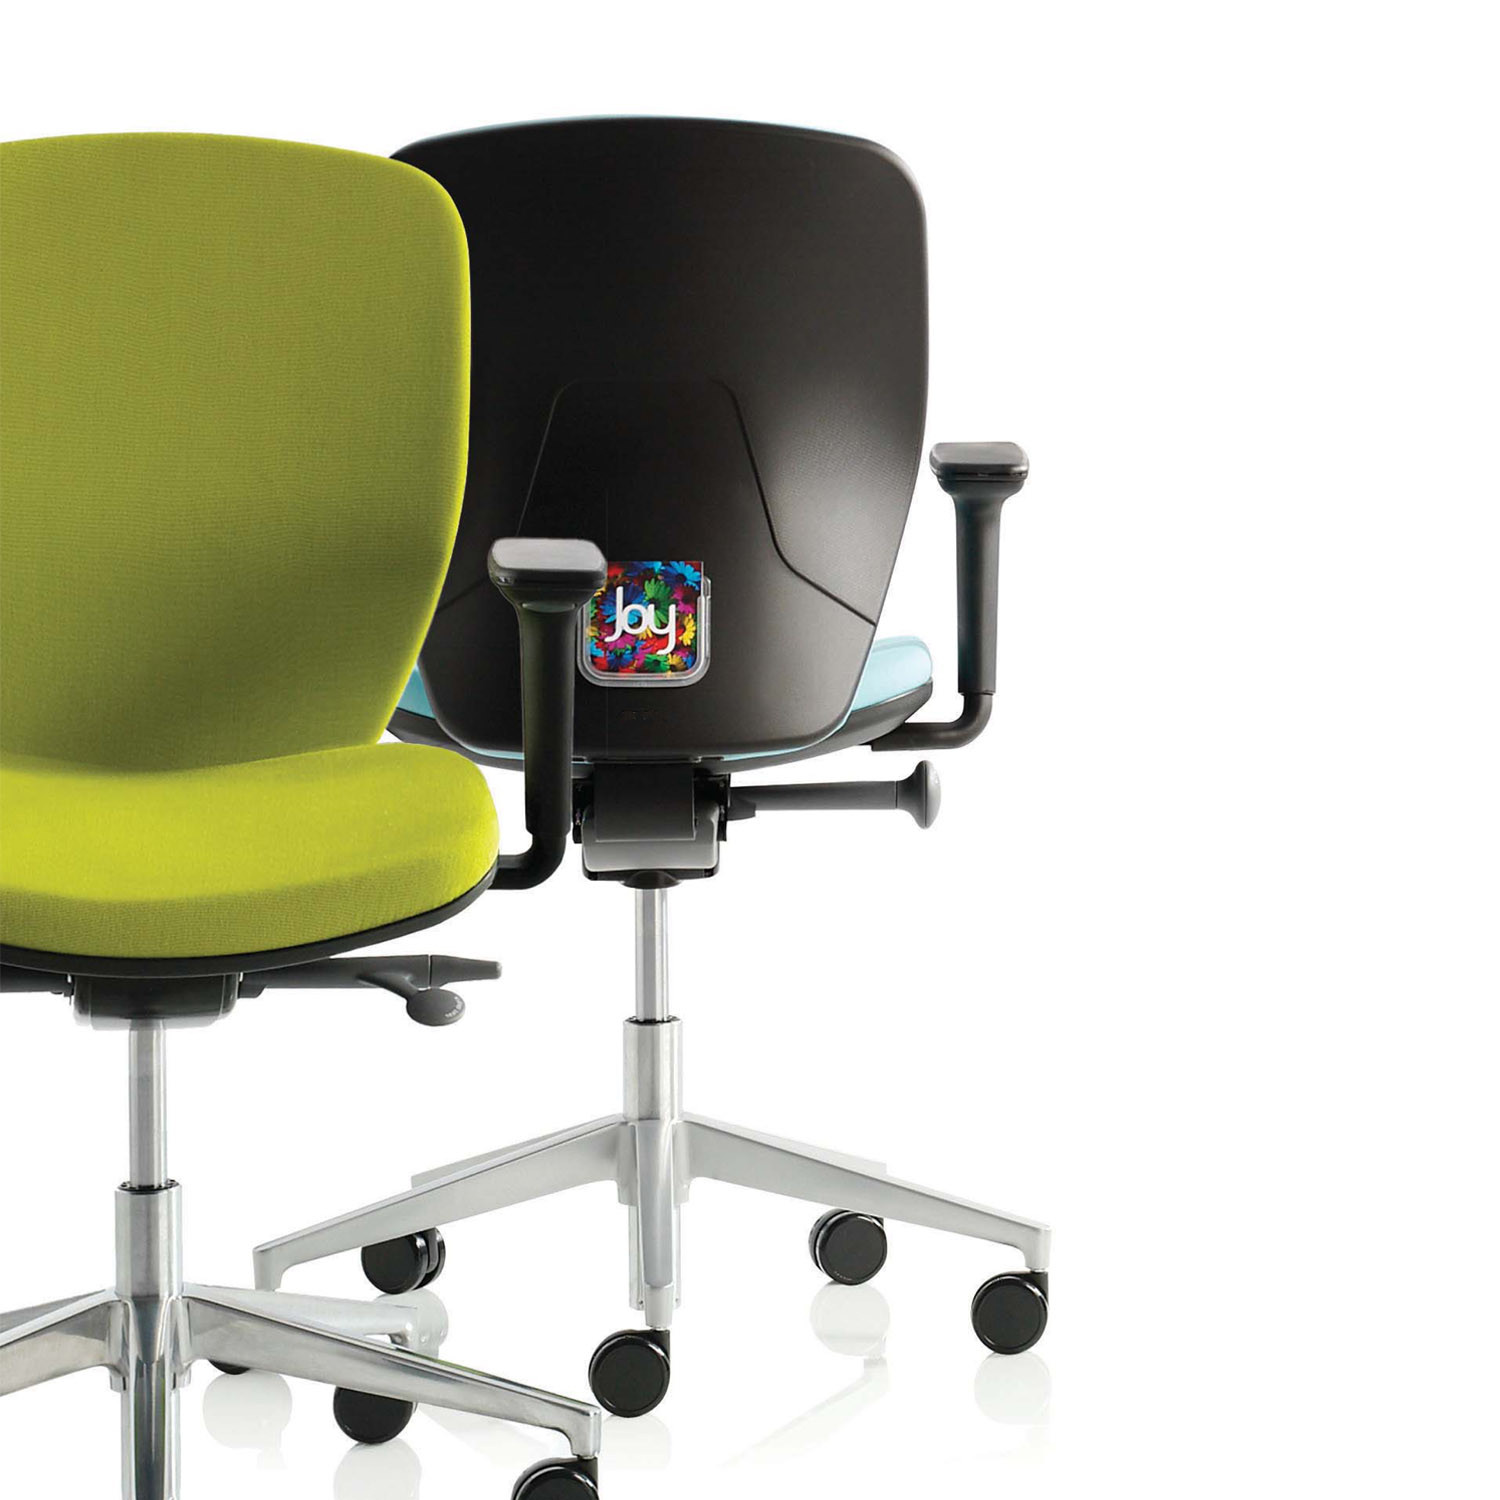 Joy Office Task Chairs